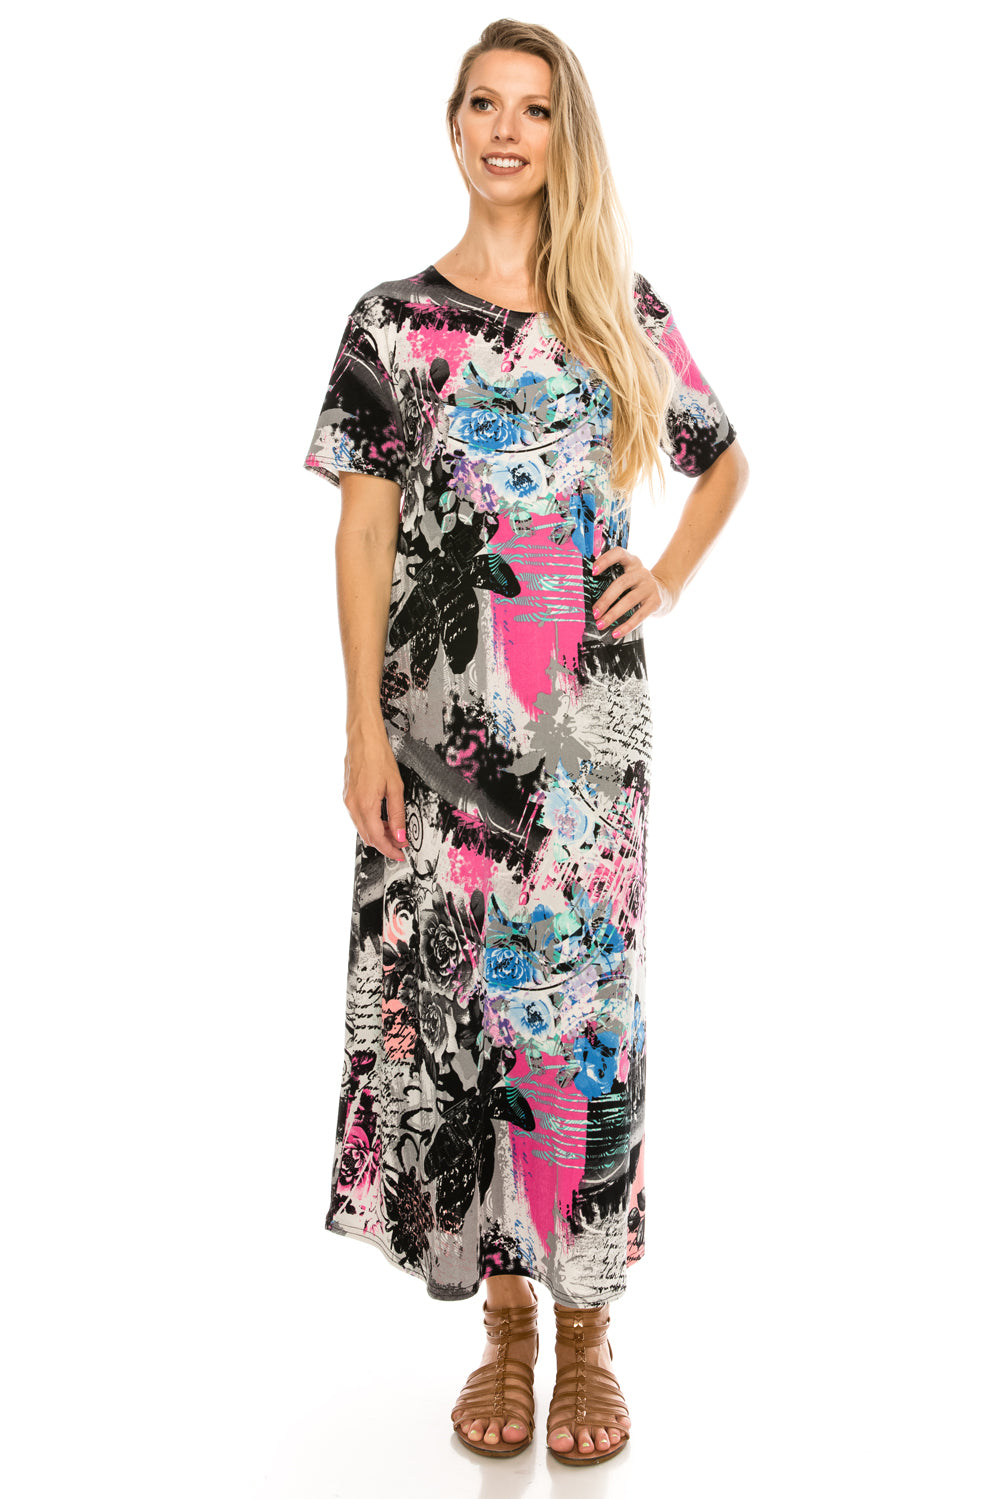 Jostar Women's Stretchy Long Dress Short Sleeve Print, 702BN-SP-W169 - Jostar Online